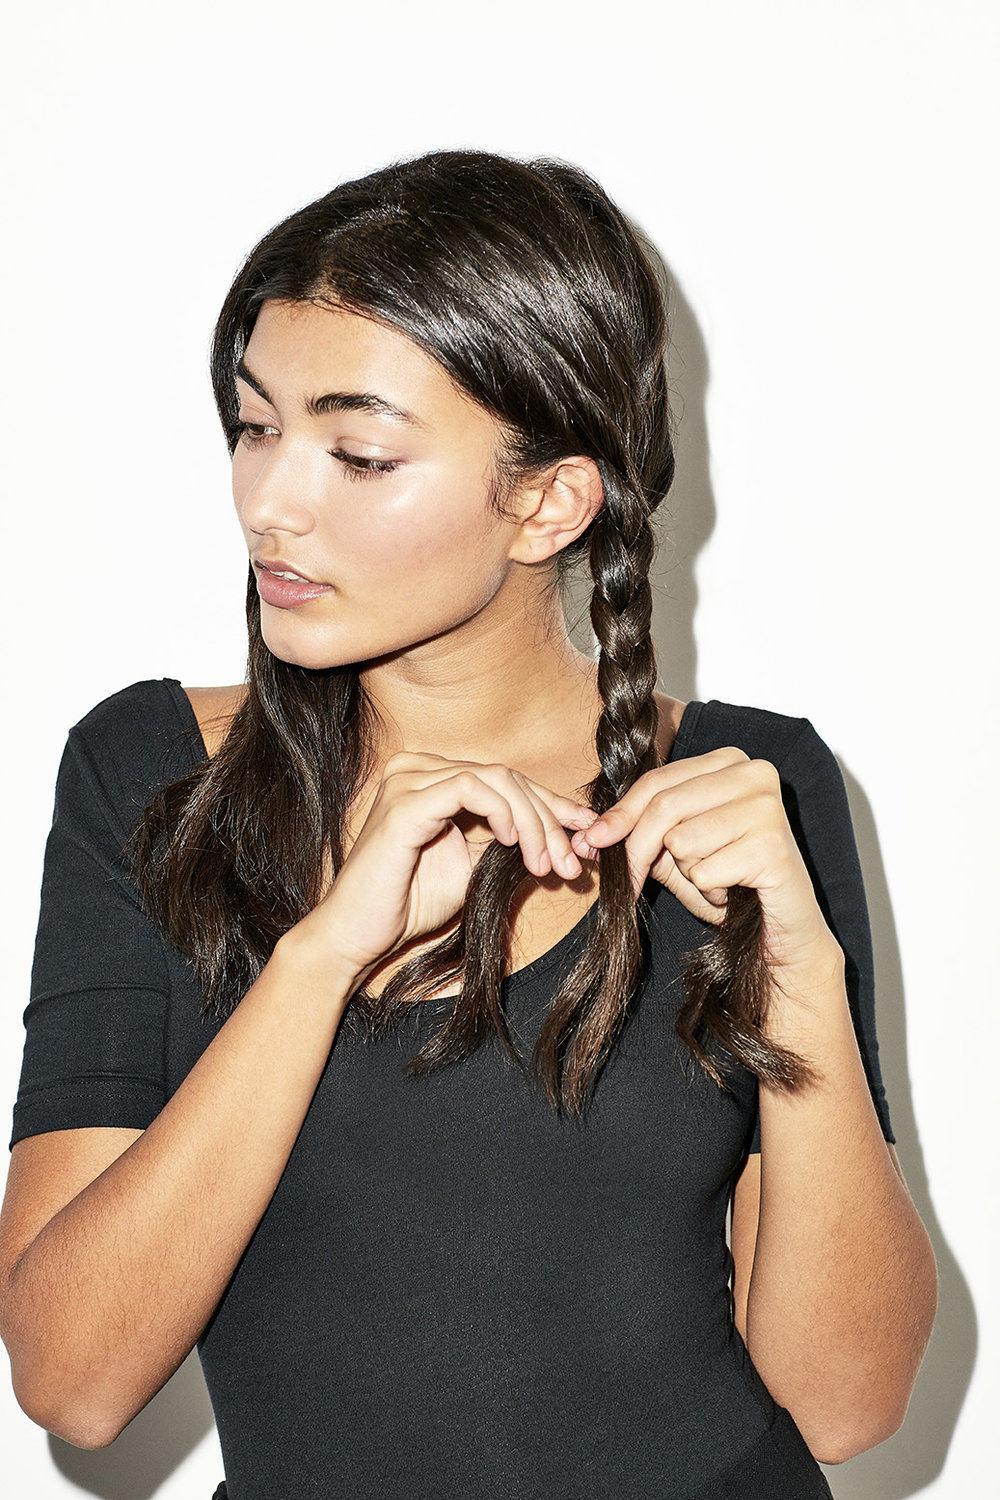 STEP 1 - Create a middle parting down the centre of the head – starting from your nose line as a guide. Now, you have two sections of hair on each side of your head to tie into two ponytails. Separate each ponytail individually into three sections and braid. Then secure with elastic.